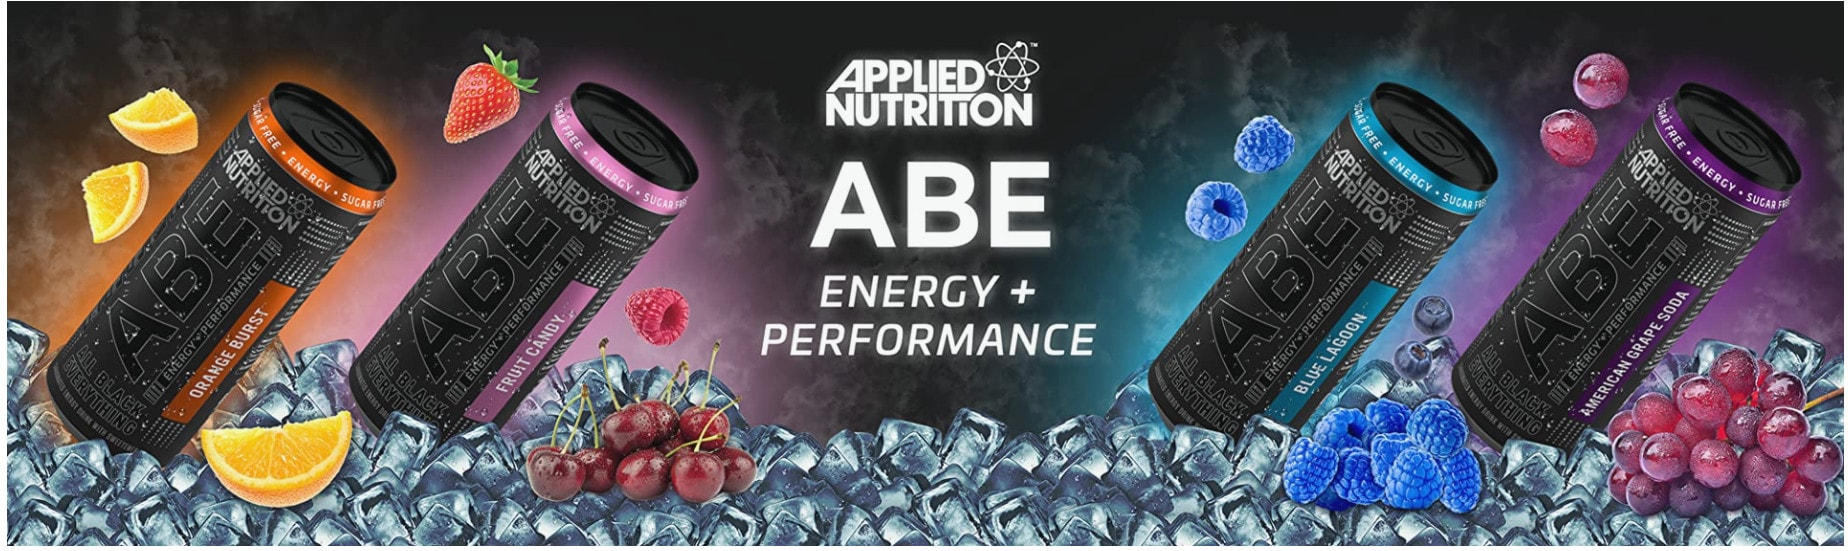 Applied Nutrition - ABE Can (330ml) - untitledp 1